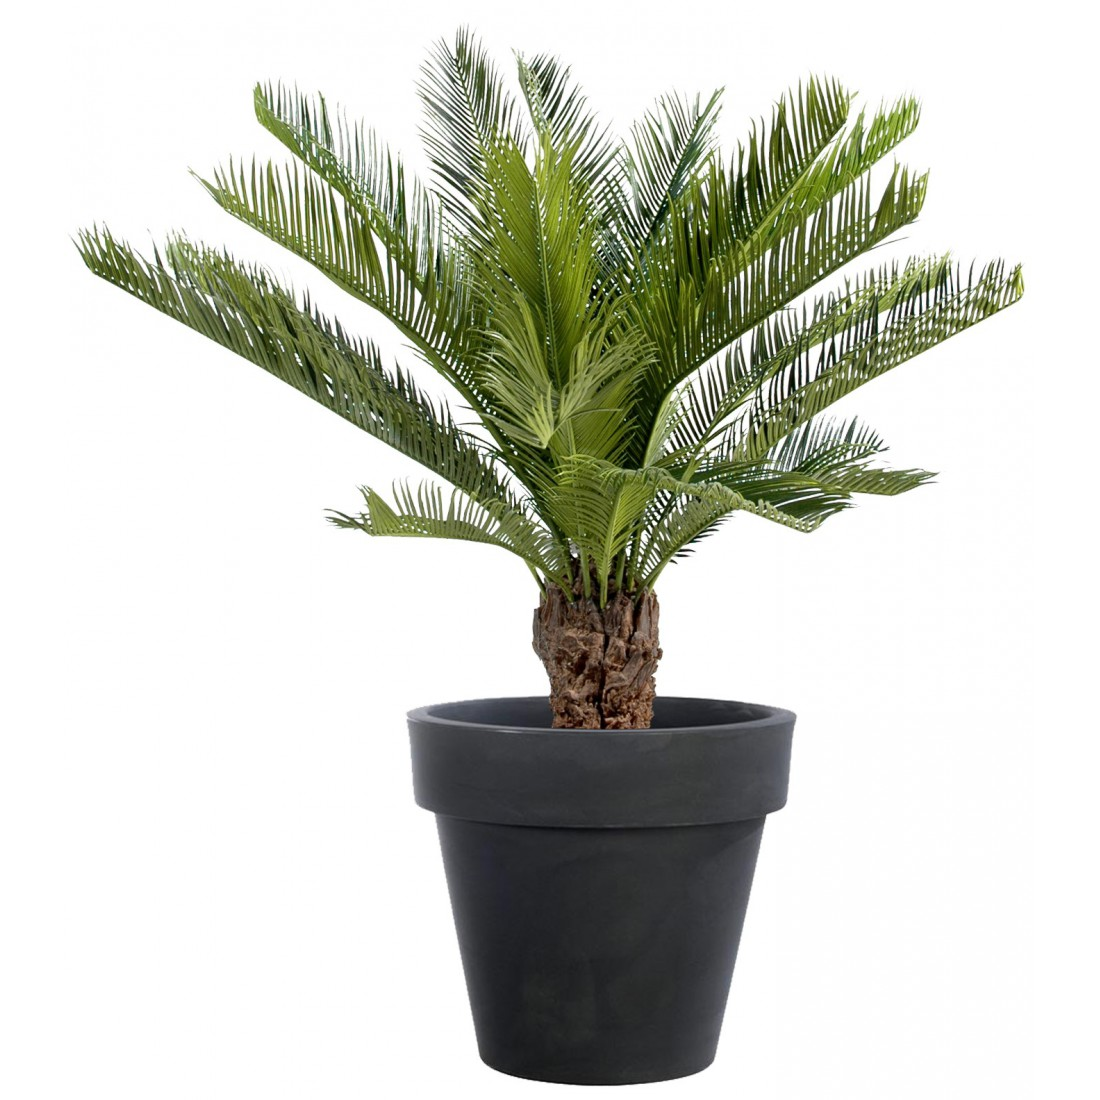 cycas artificiel tronc 90cm diam 75cm arbres exotiques. Black Bedroom Furniture Sets. Home Design Ideas